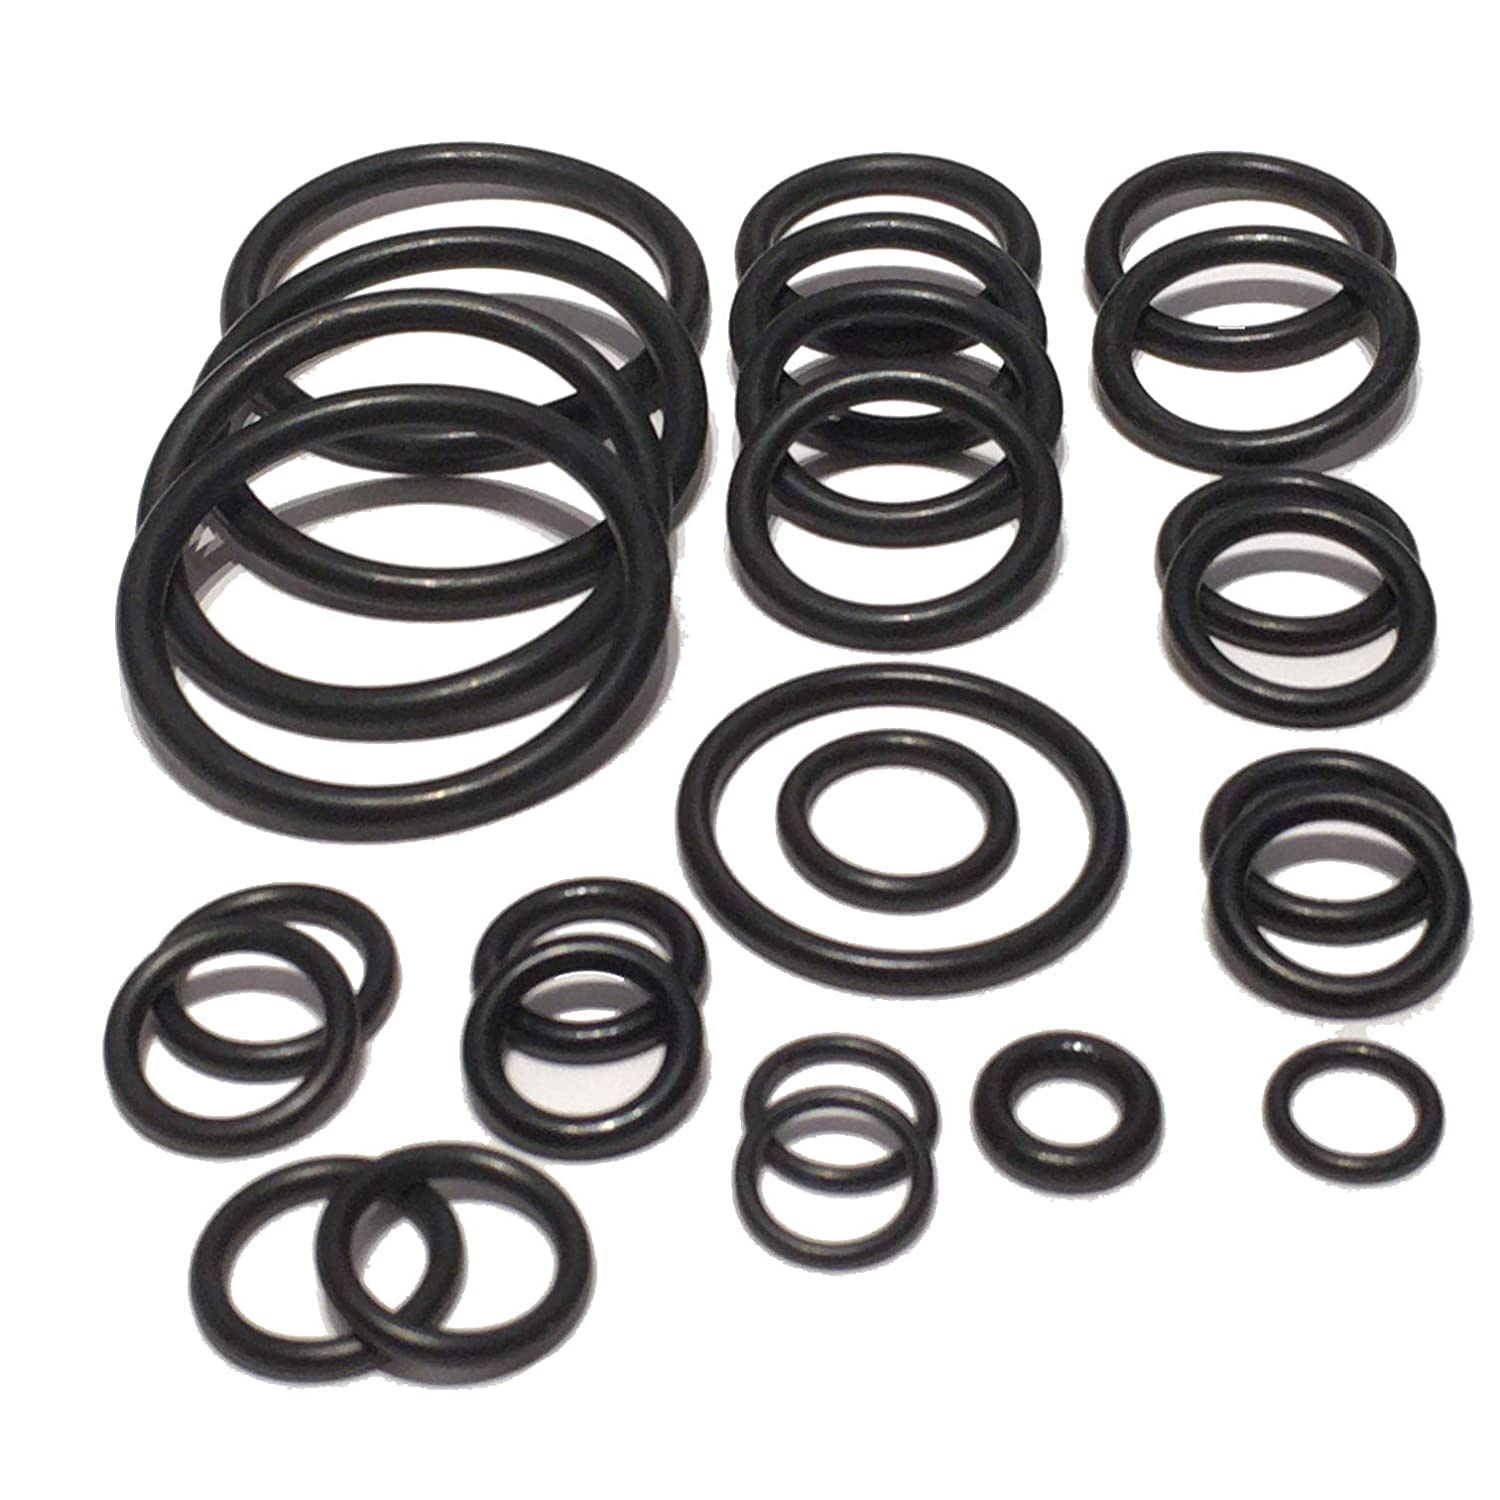 Cooling system radiator hoses O ring set for BMW E90 E91 E92 E93 328i Xi 330i N52 51 engines